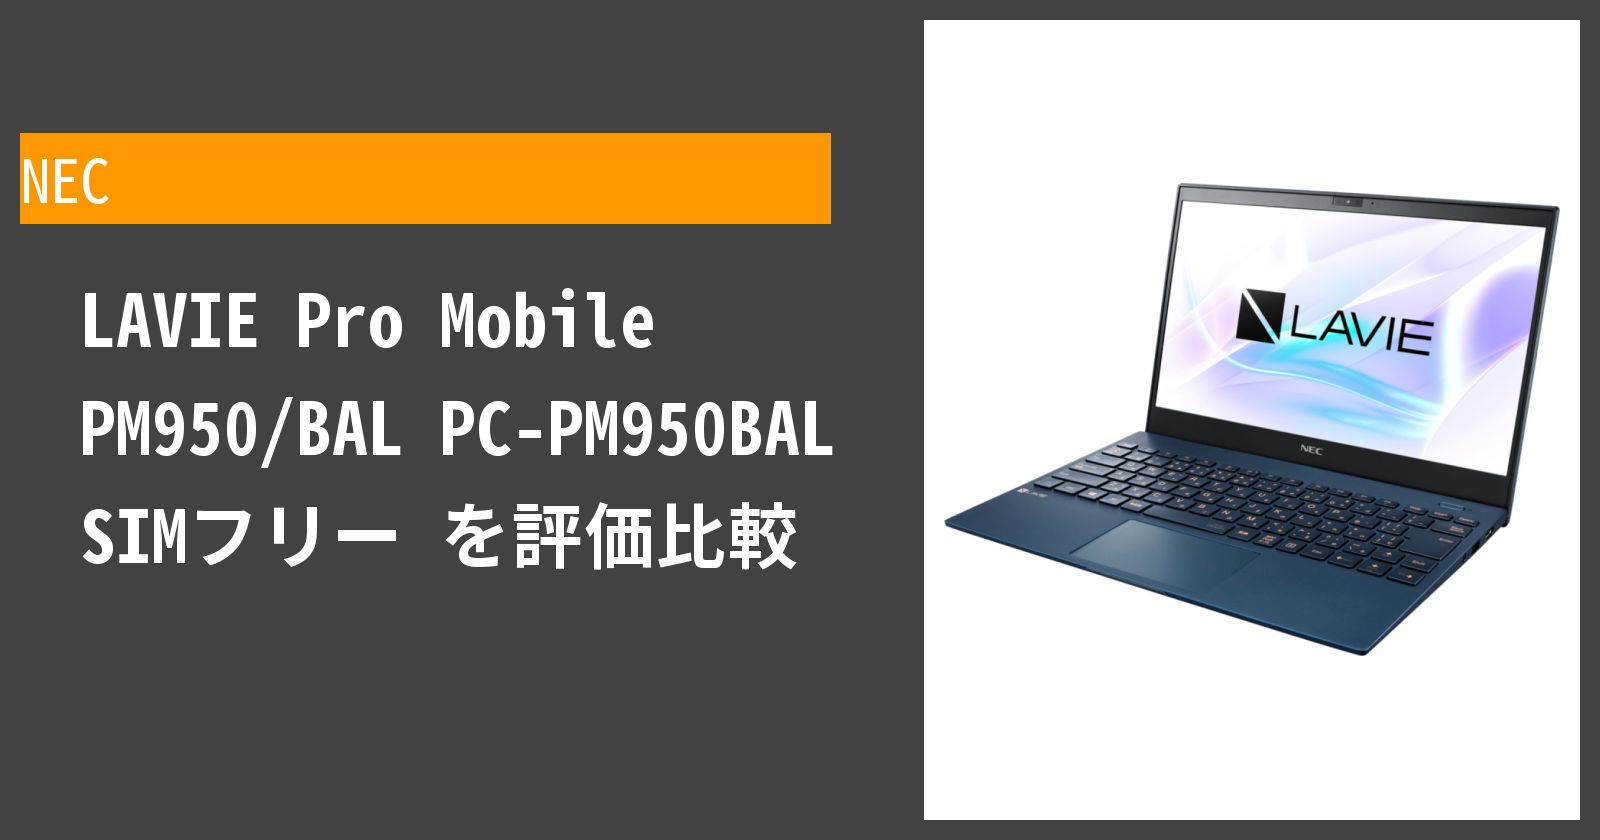 LAVIE Pro Mobile PM950/BAL PC-PM950BAL SIMフリーを徹底評価